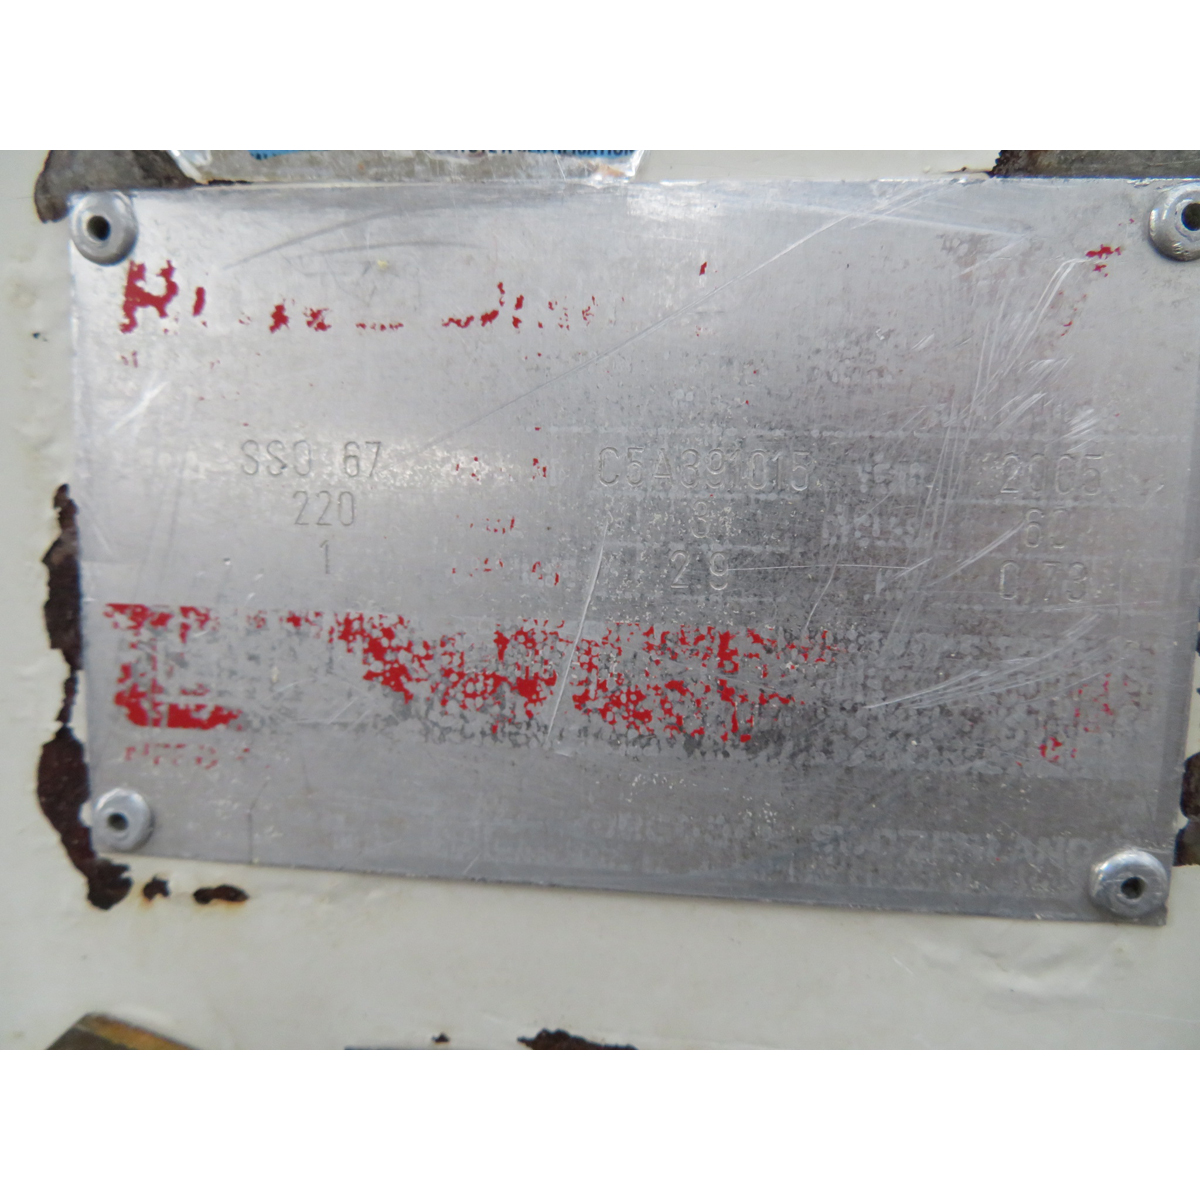 Sso Quote: Rondo SSO-67 Reversible Dough Sheeter, Used Great